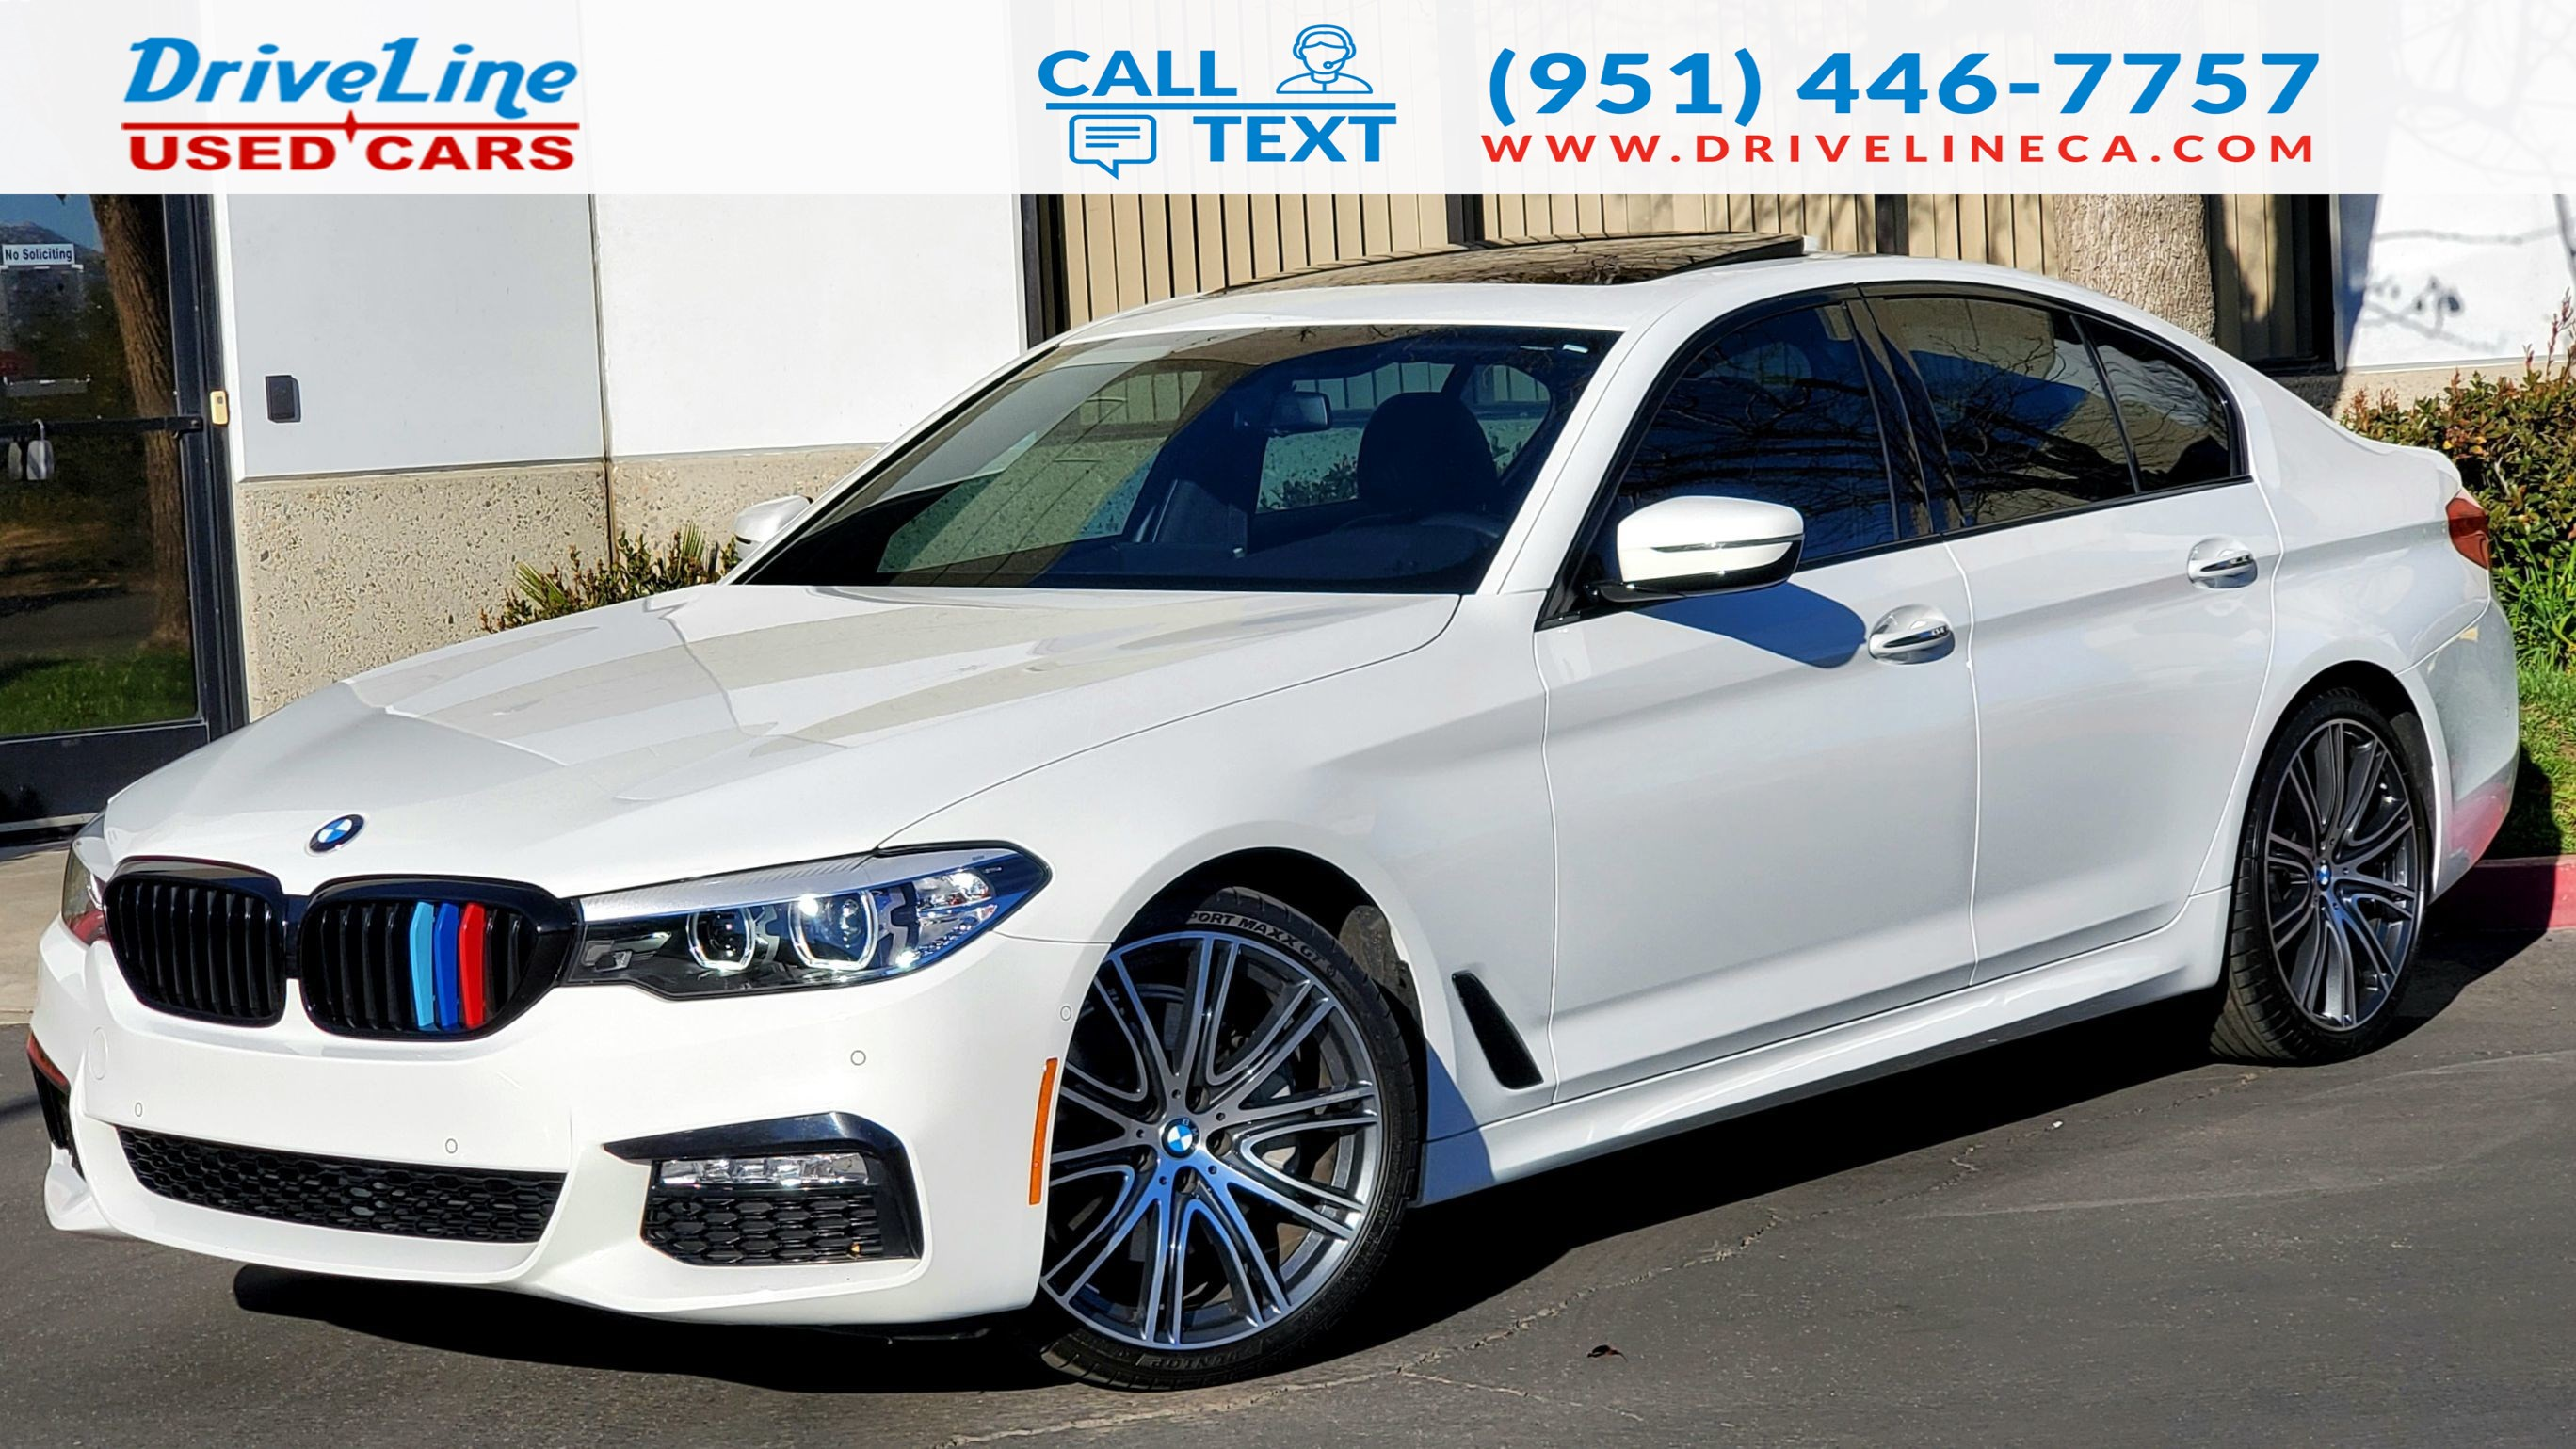 2018 BMW 5 Series 540i - M SPORT PACKAGE - $66,050 MSRP